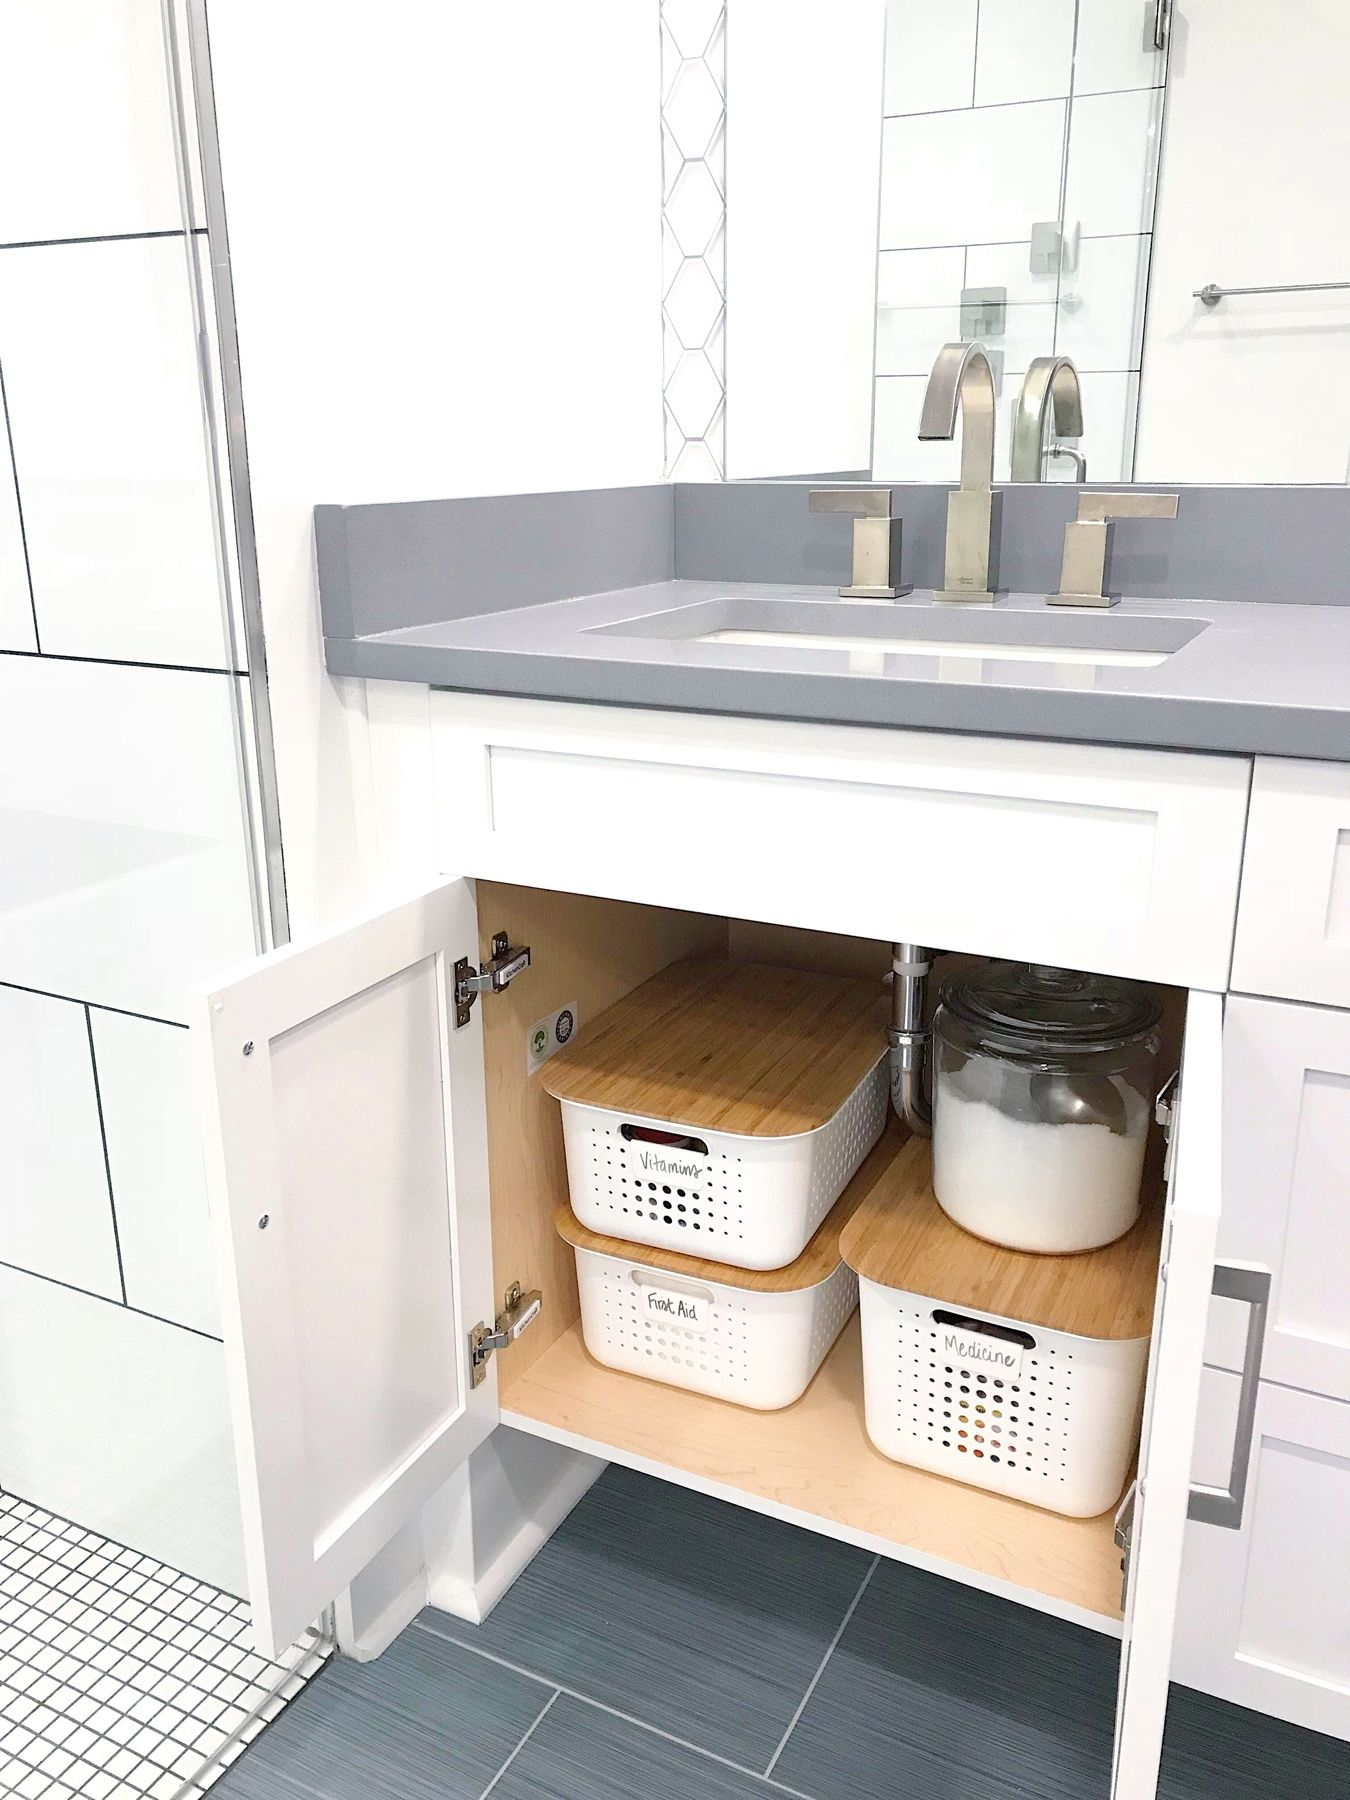 Neat Method Bathrooms Modern Bathrooms White Bathrooms Bathroom Organization Bathroom Desig In 2020 Small Space Bathroom Small Bathroom Storage Under Sink Storage